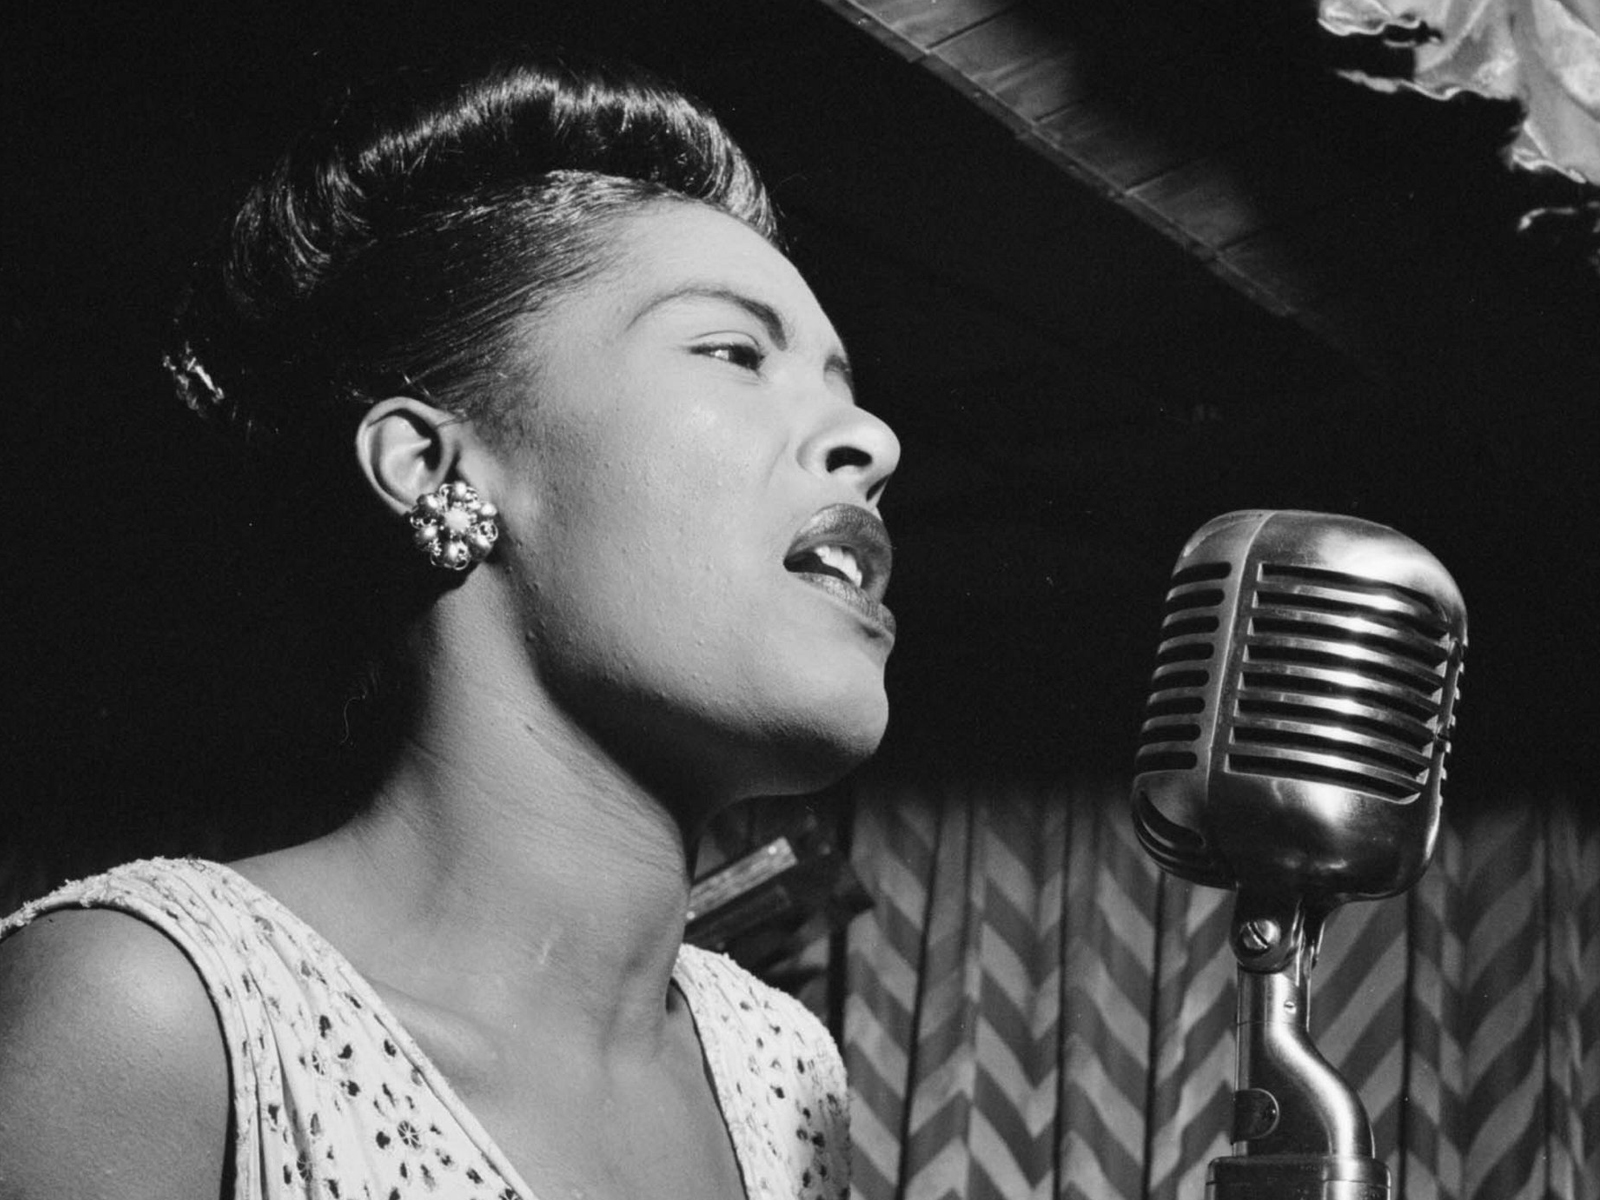 Billie Holiday vero nome